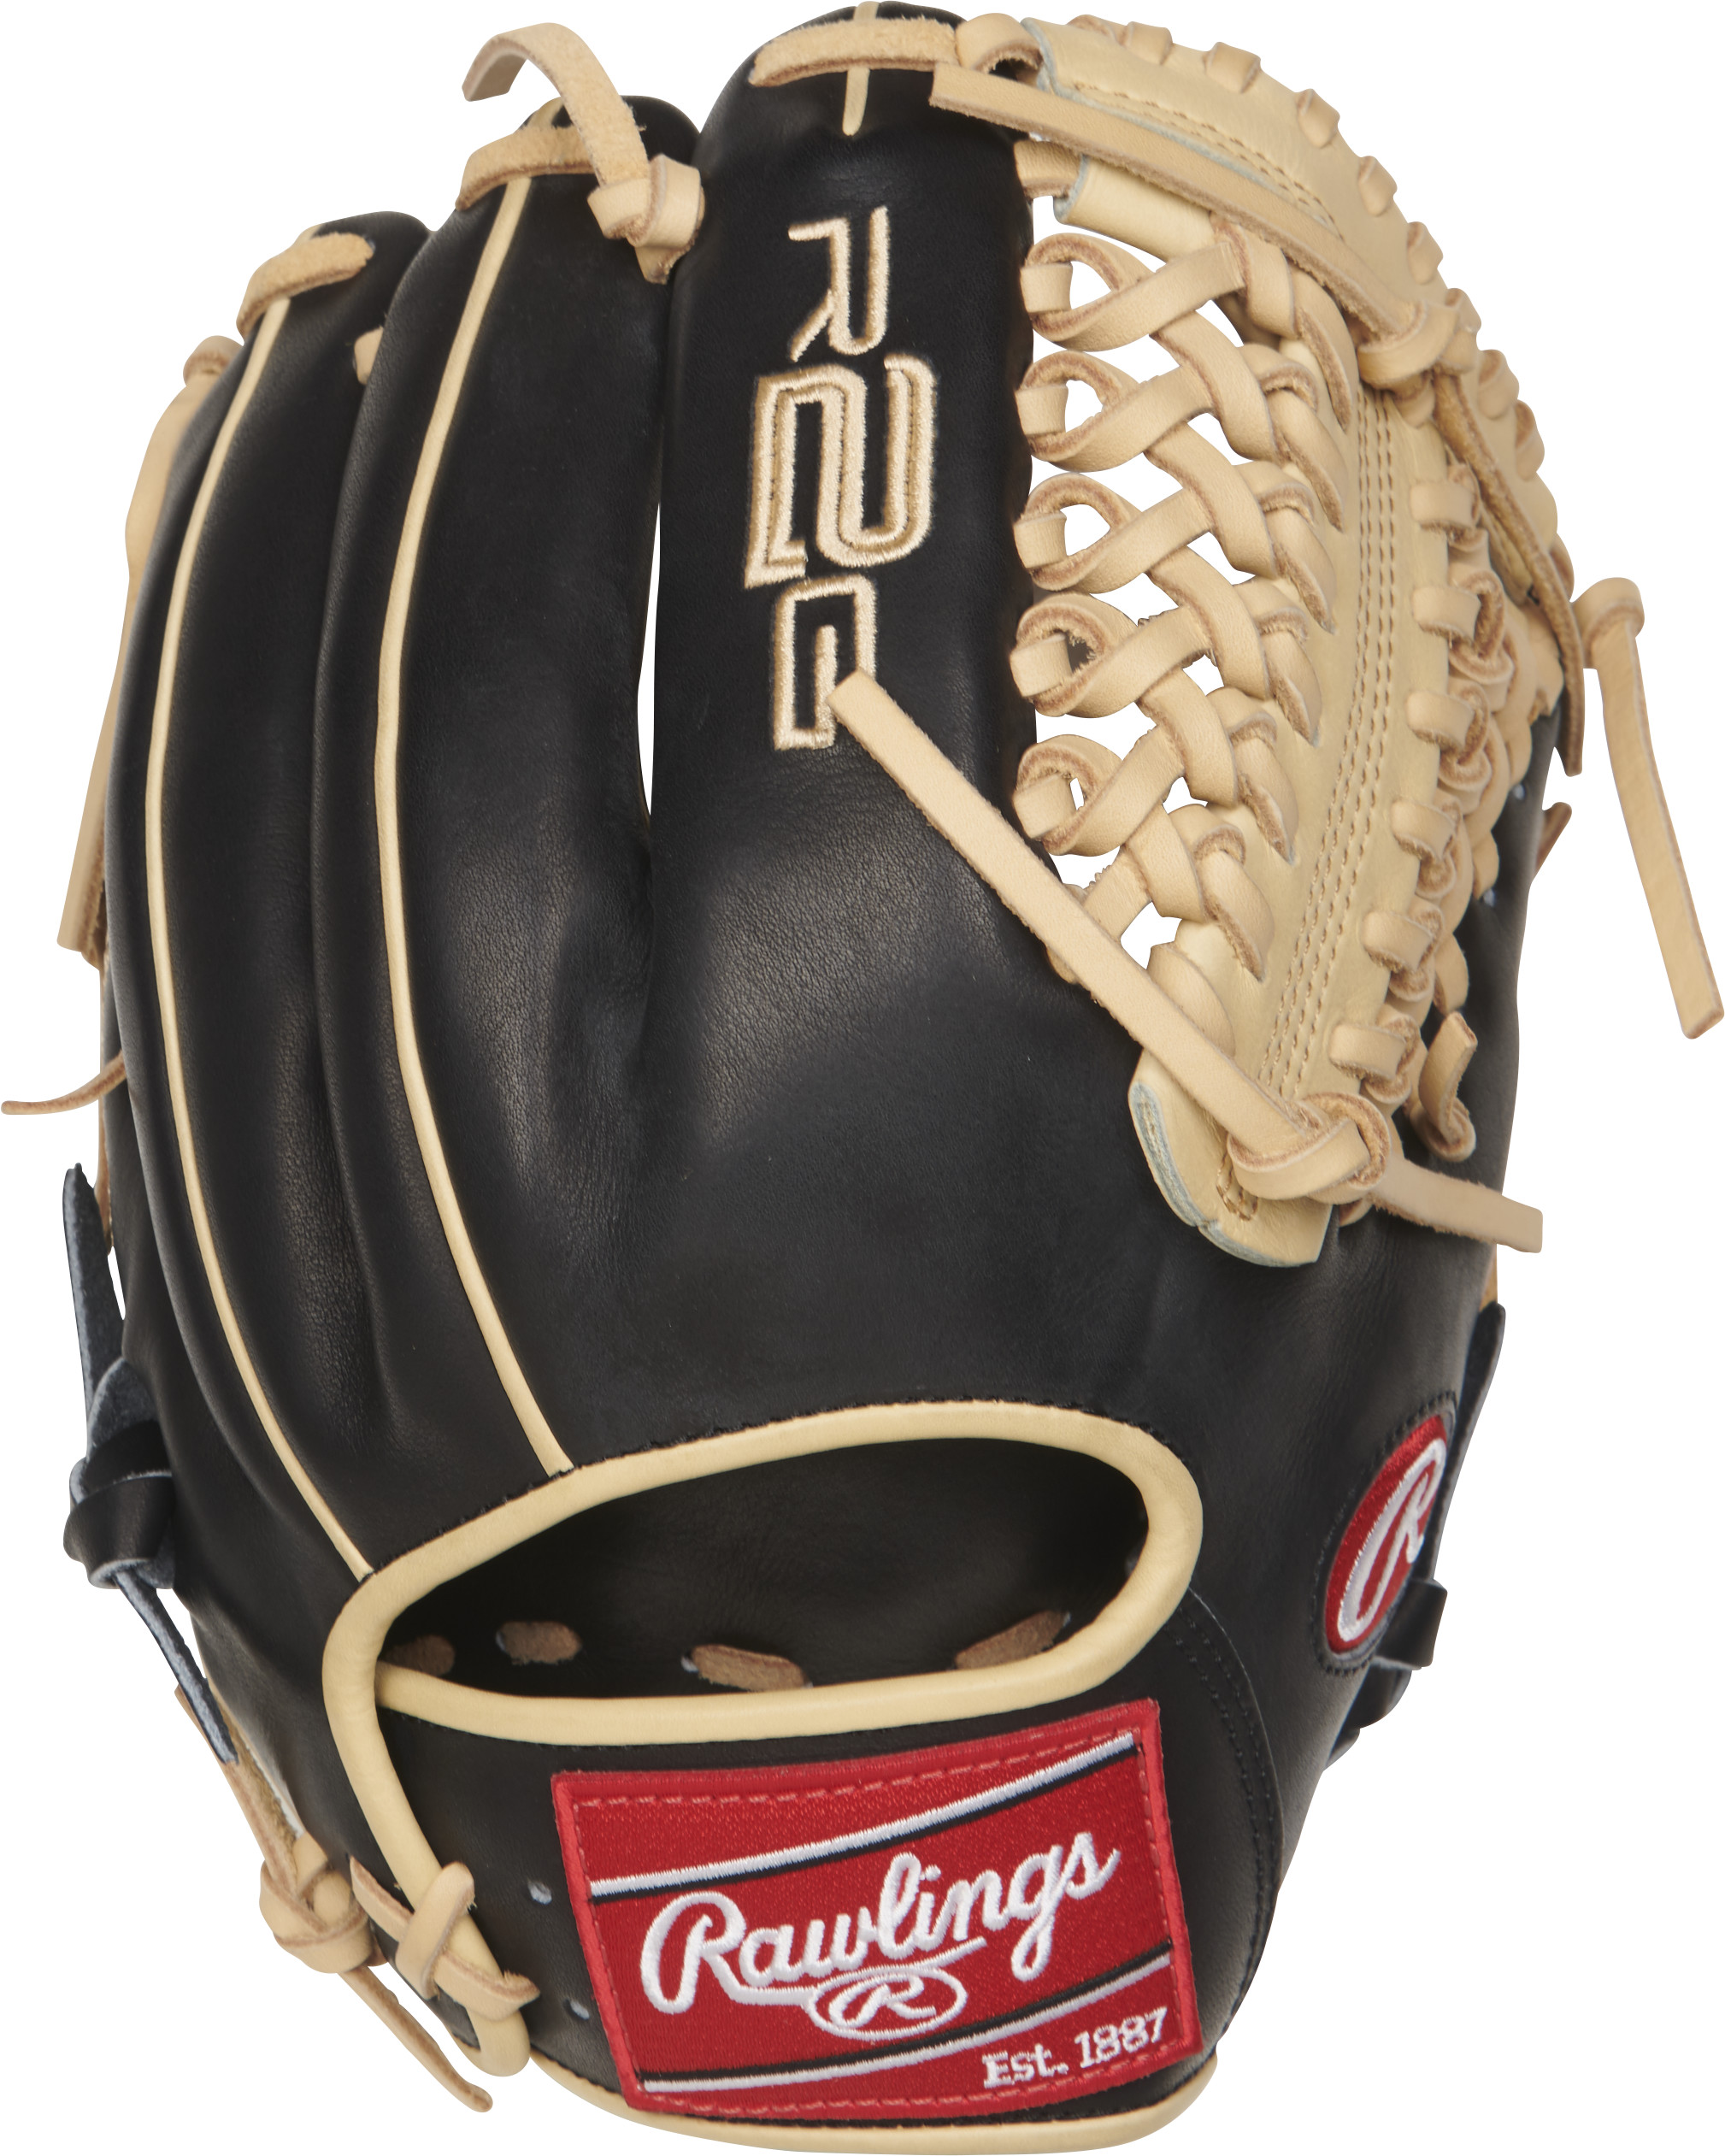 http://www.bestbatdeals.com/images/gloves/rawlings/PROR205-4BC-2.jpg